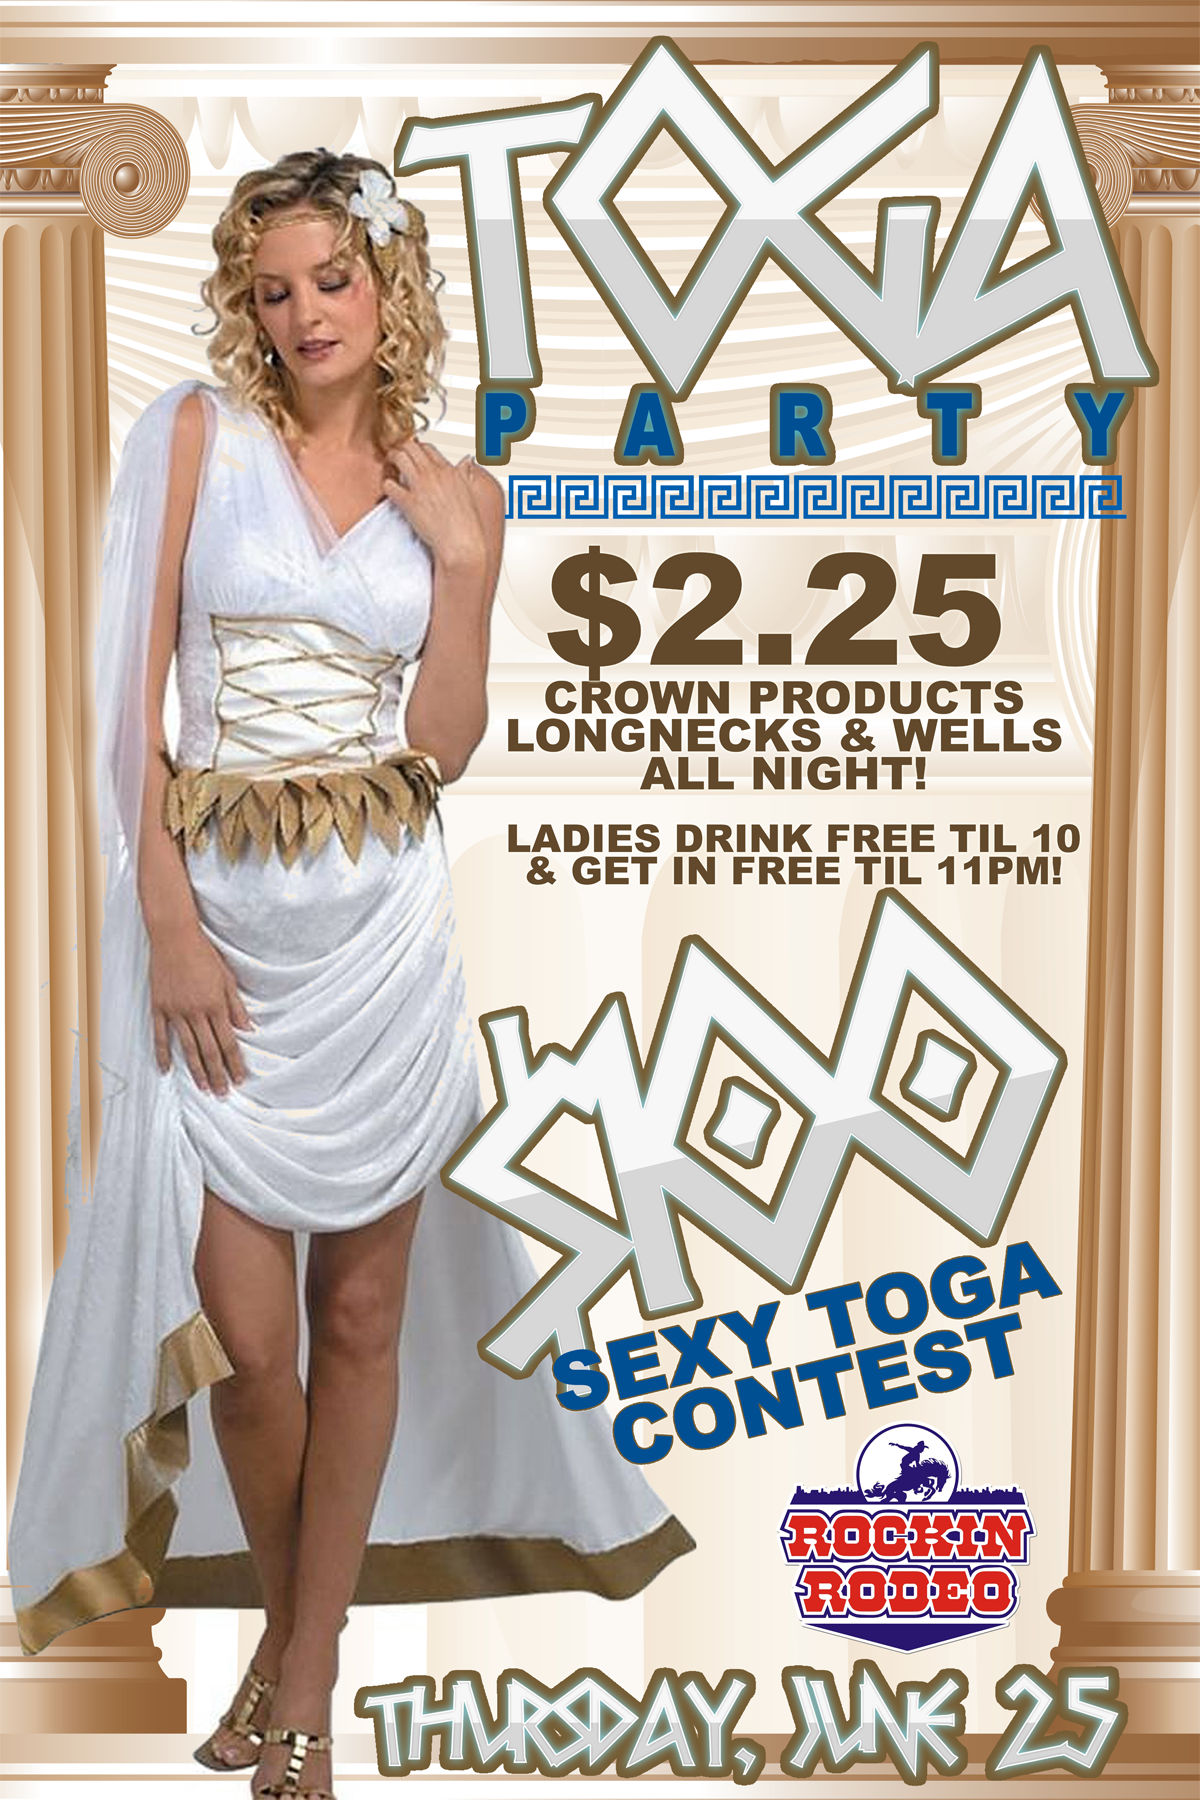 Togaparty Poster Flyer Design For Rockin Rodeo Nightclub In Bossier City Toga Party Night Club Toga